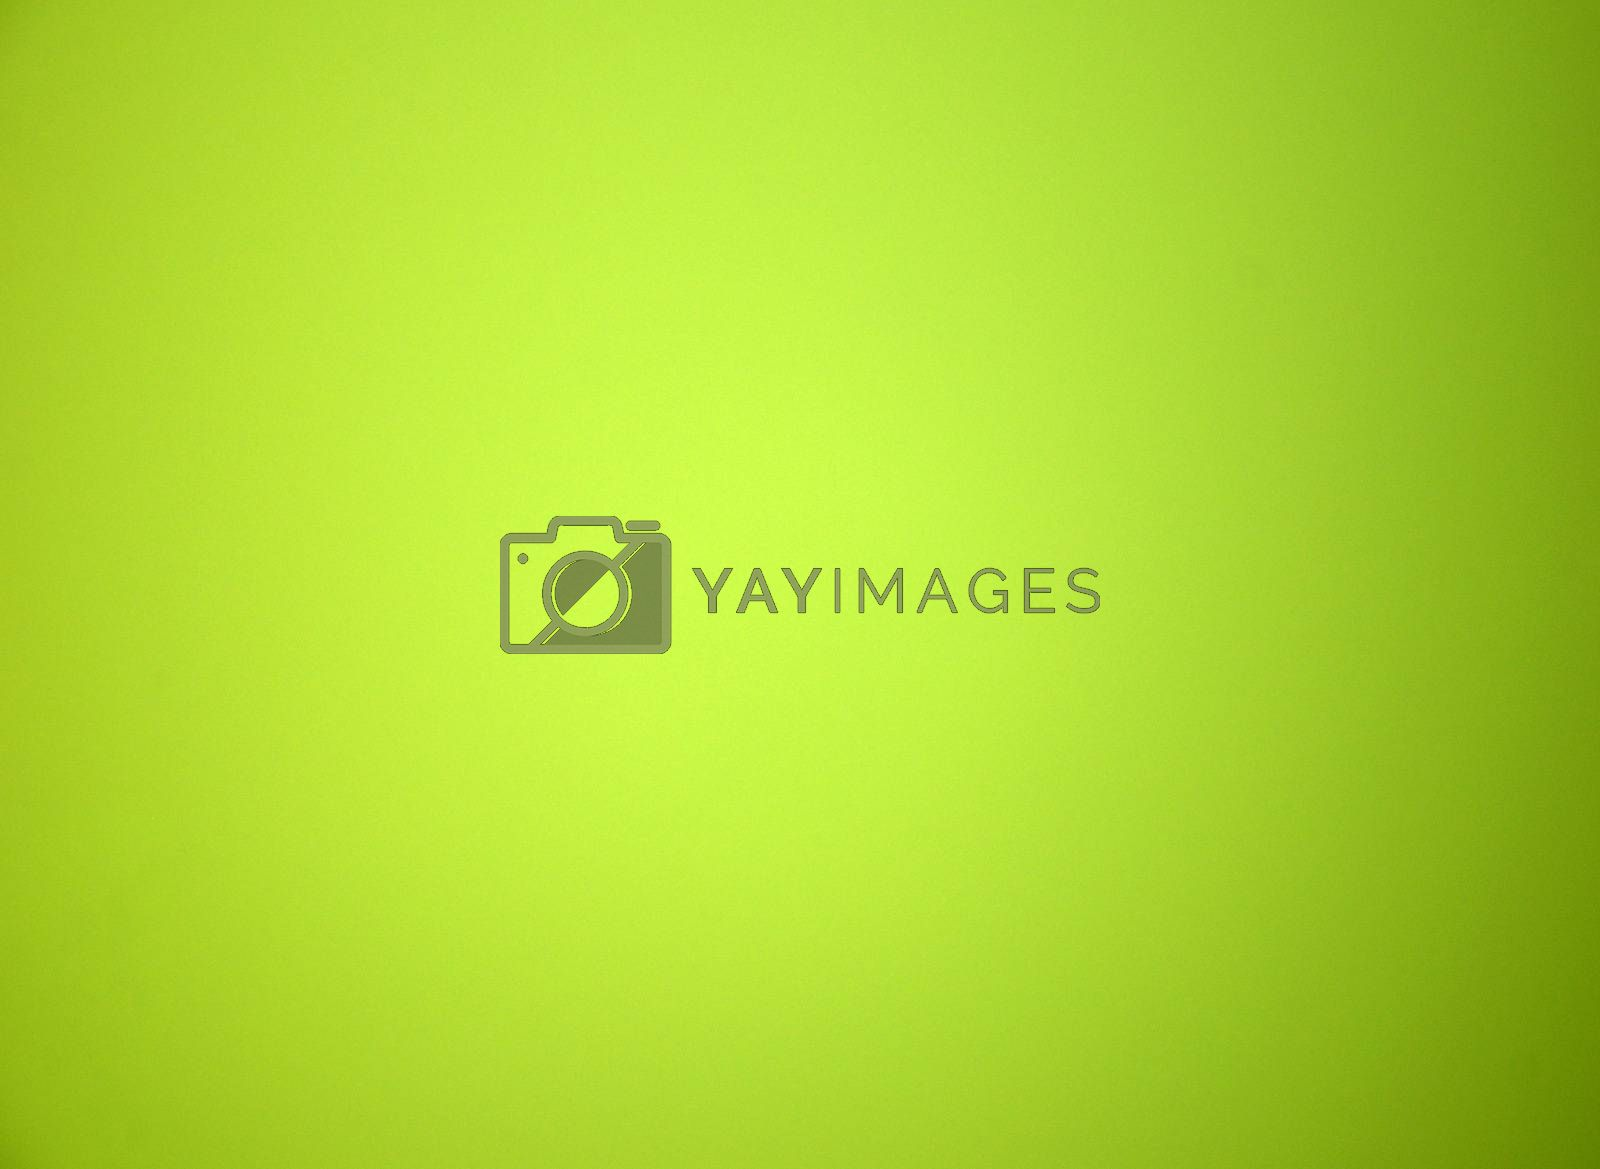 Light green blurred solid color background. Texture, gradient, vignetting